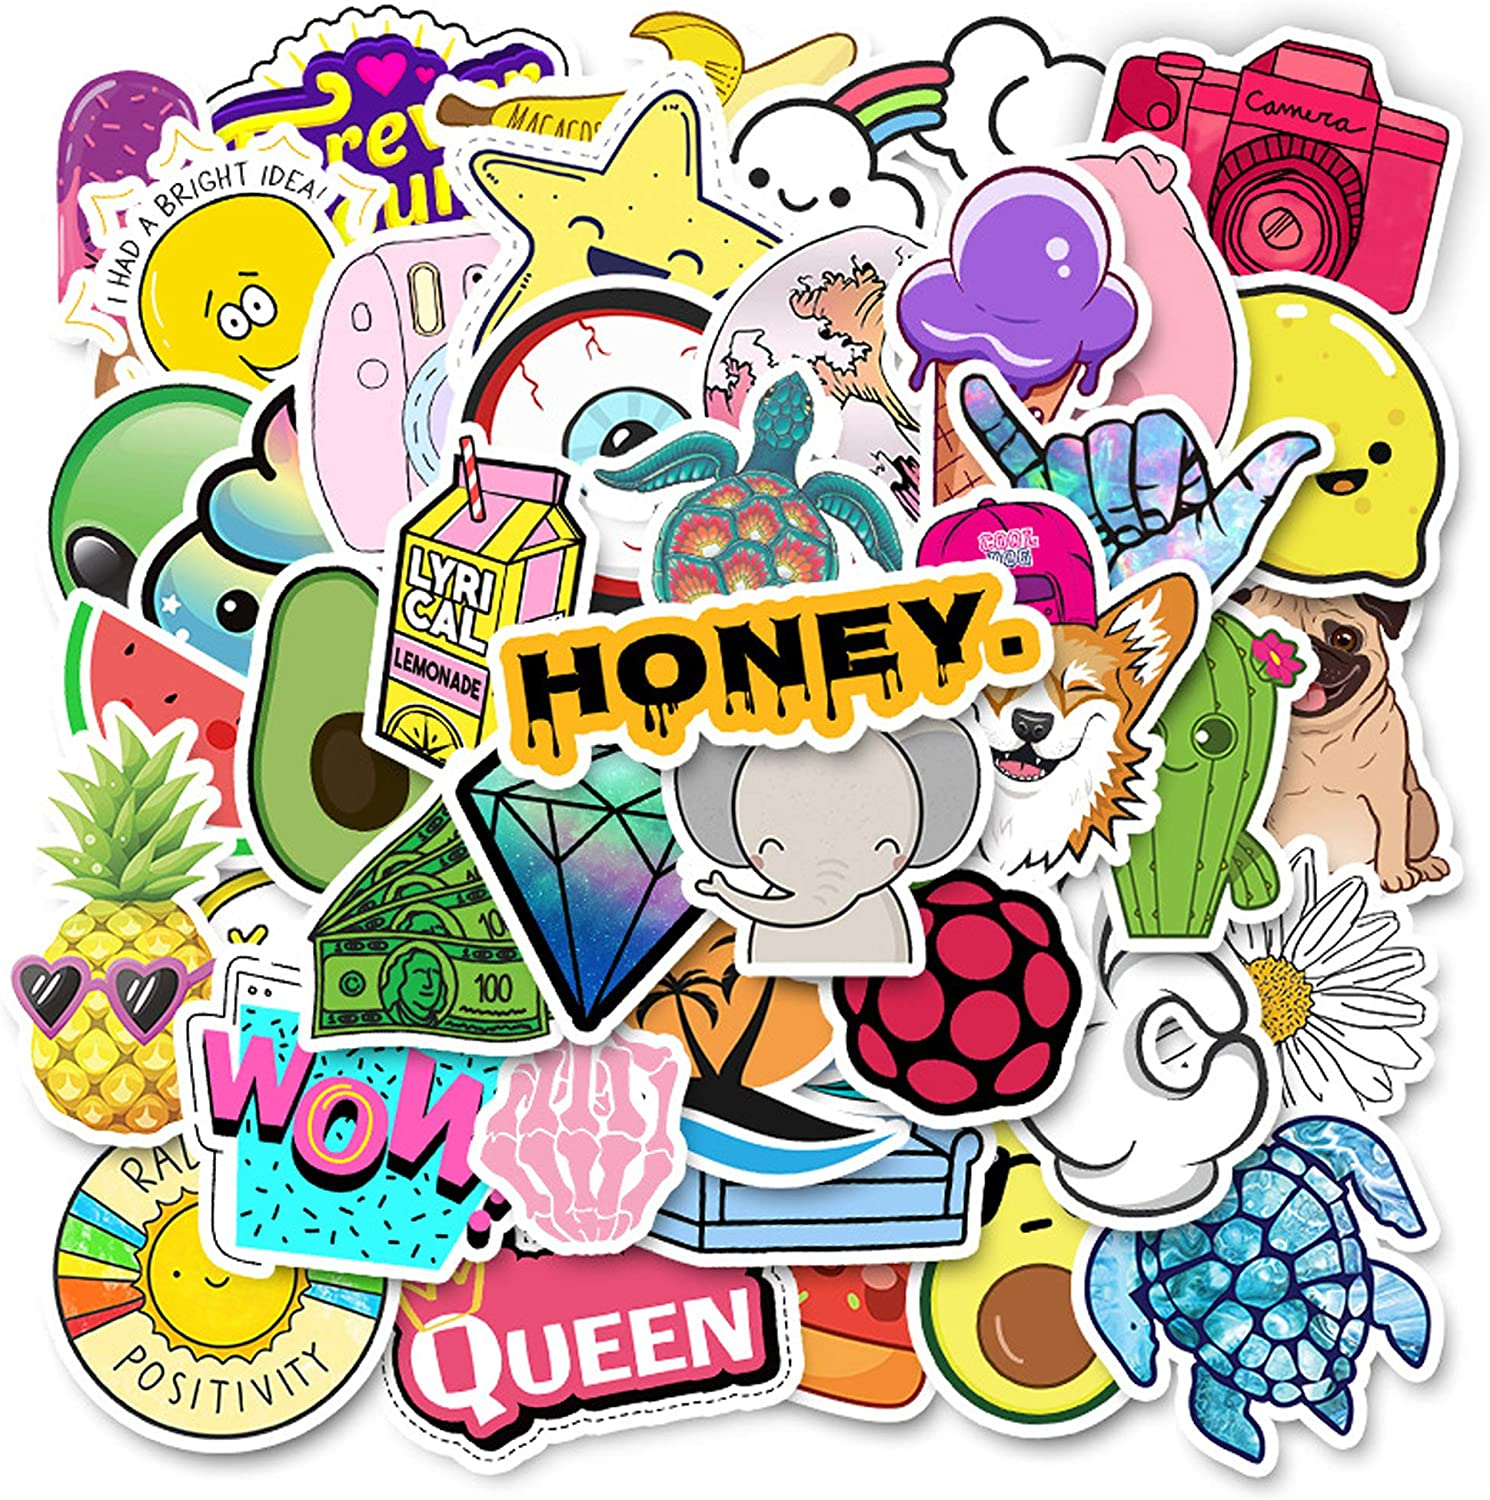 ONDY Stickers for Water Bottles 50 Pcs,Aesthetic Trendy Stickers Cute Vsco Stickers for Teens,Perfect Graffiti Stickers for Waterbottle,Laptop,Phone,Travel